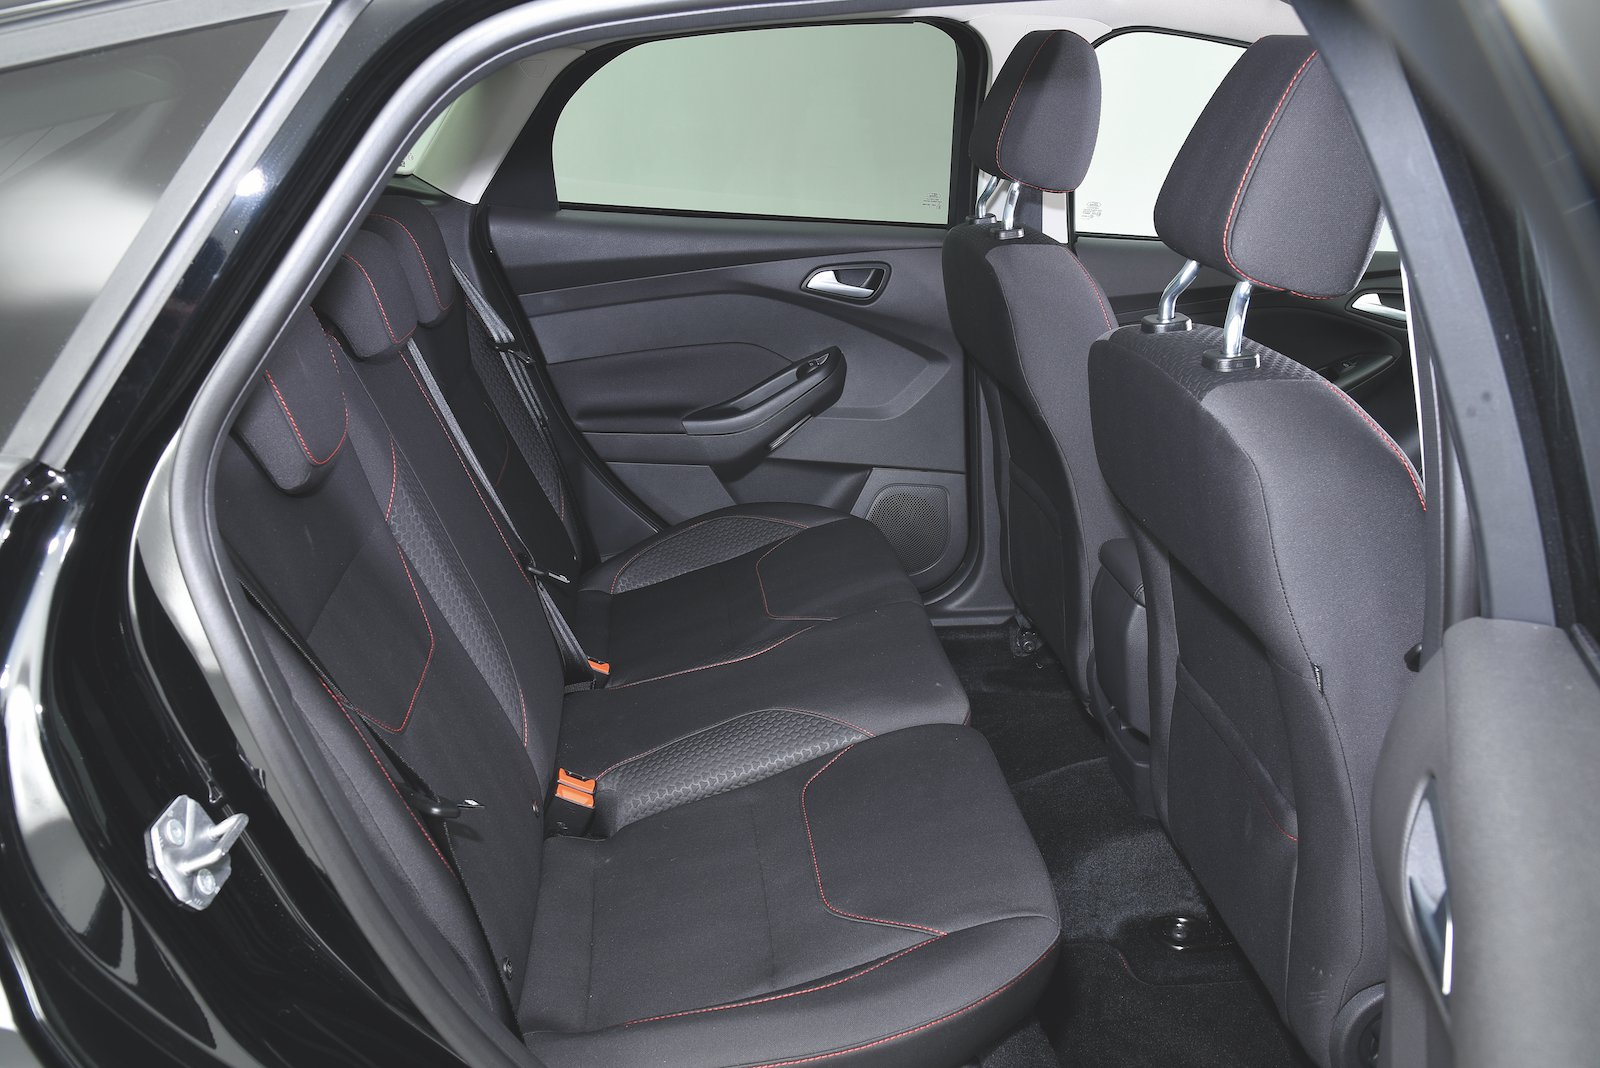 Ford Focus used